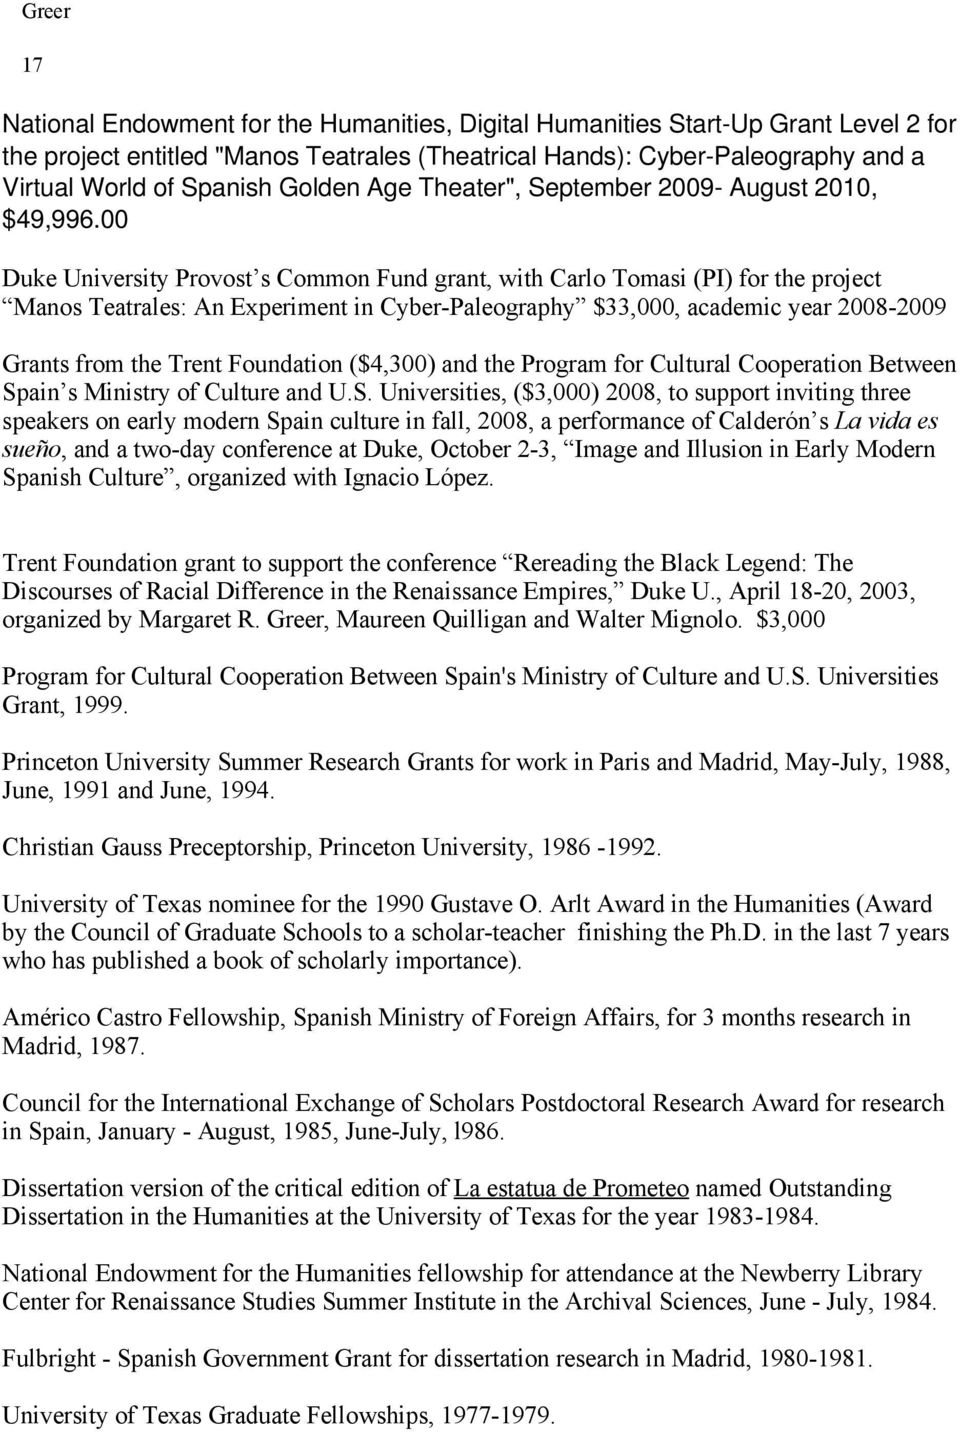 00 Duke University Provost s Common Fund grant, with Carlo Tomasi (PI) for the project Manos Teatrales: An Experiment in Cyber-Paleography $33,000, academic year 2008-2009 Grants from the Trent